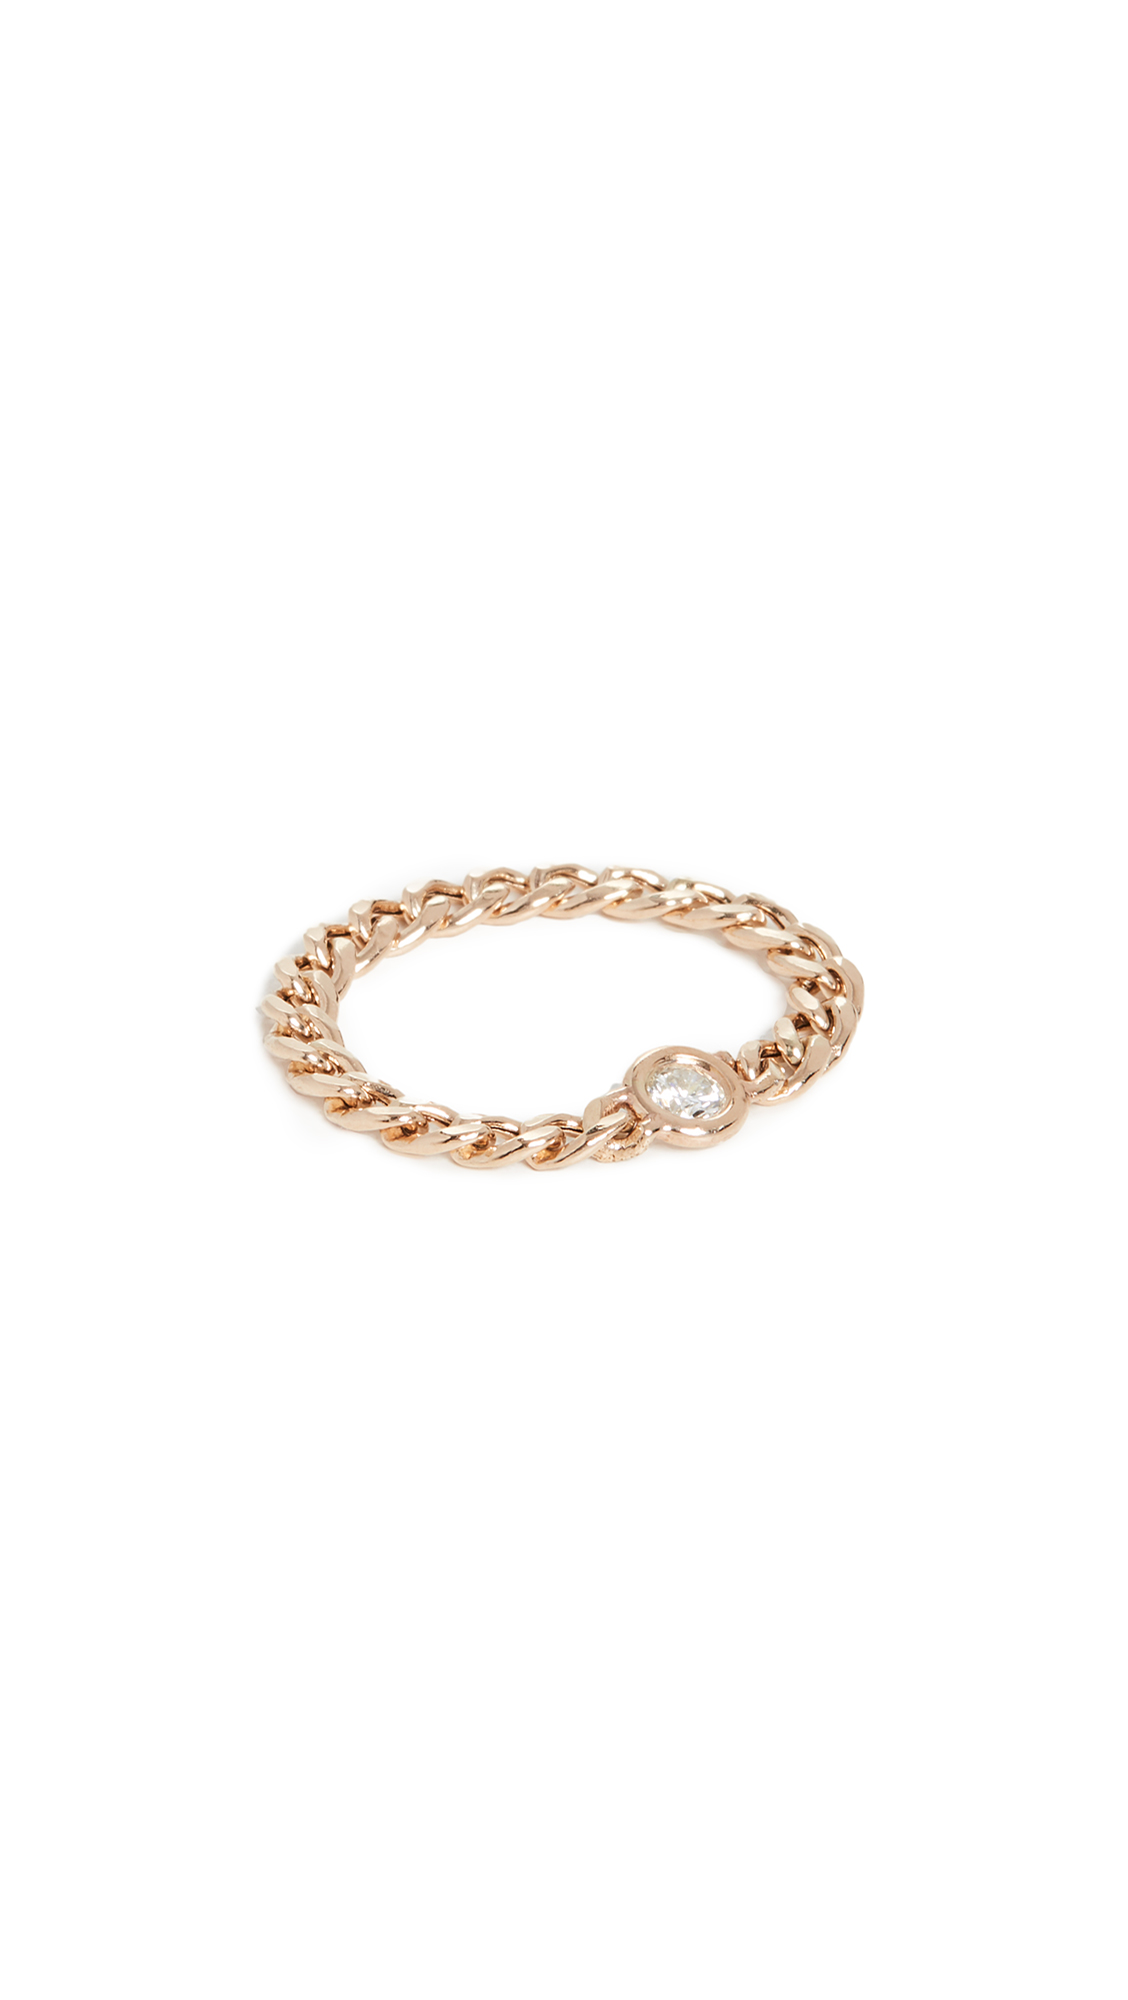 ZoË Chicco 14K Gold Small Curb Chain Ring In Yellow